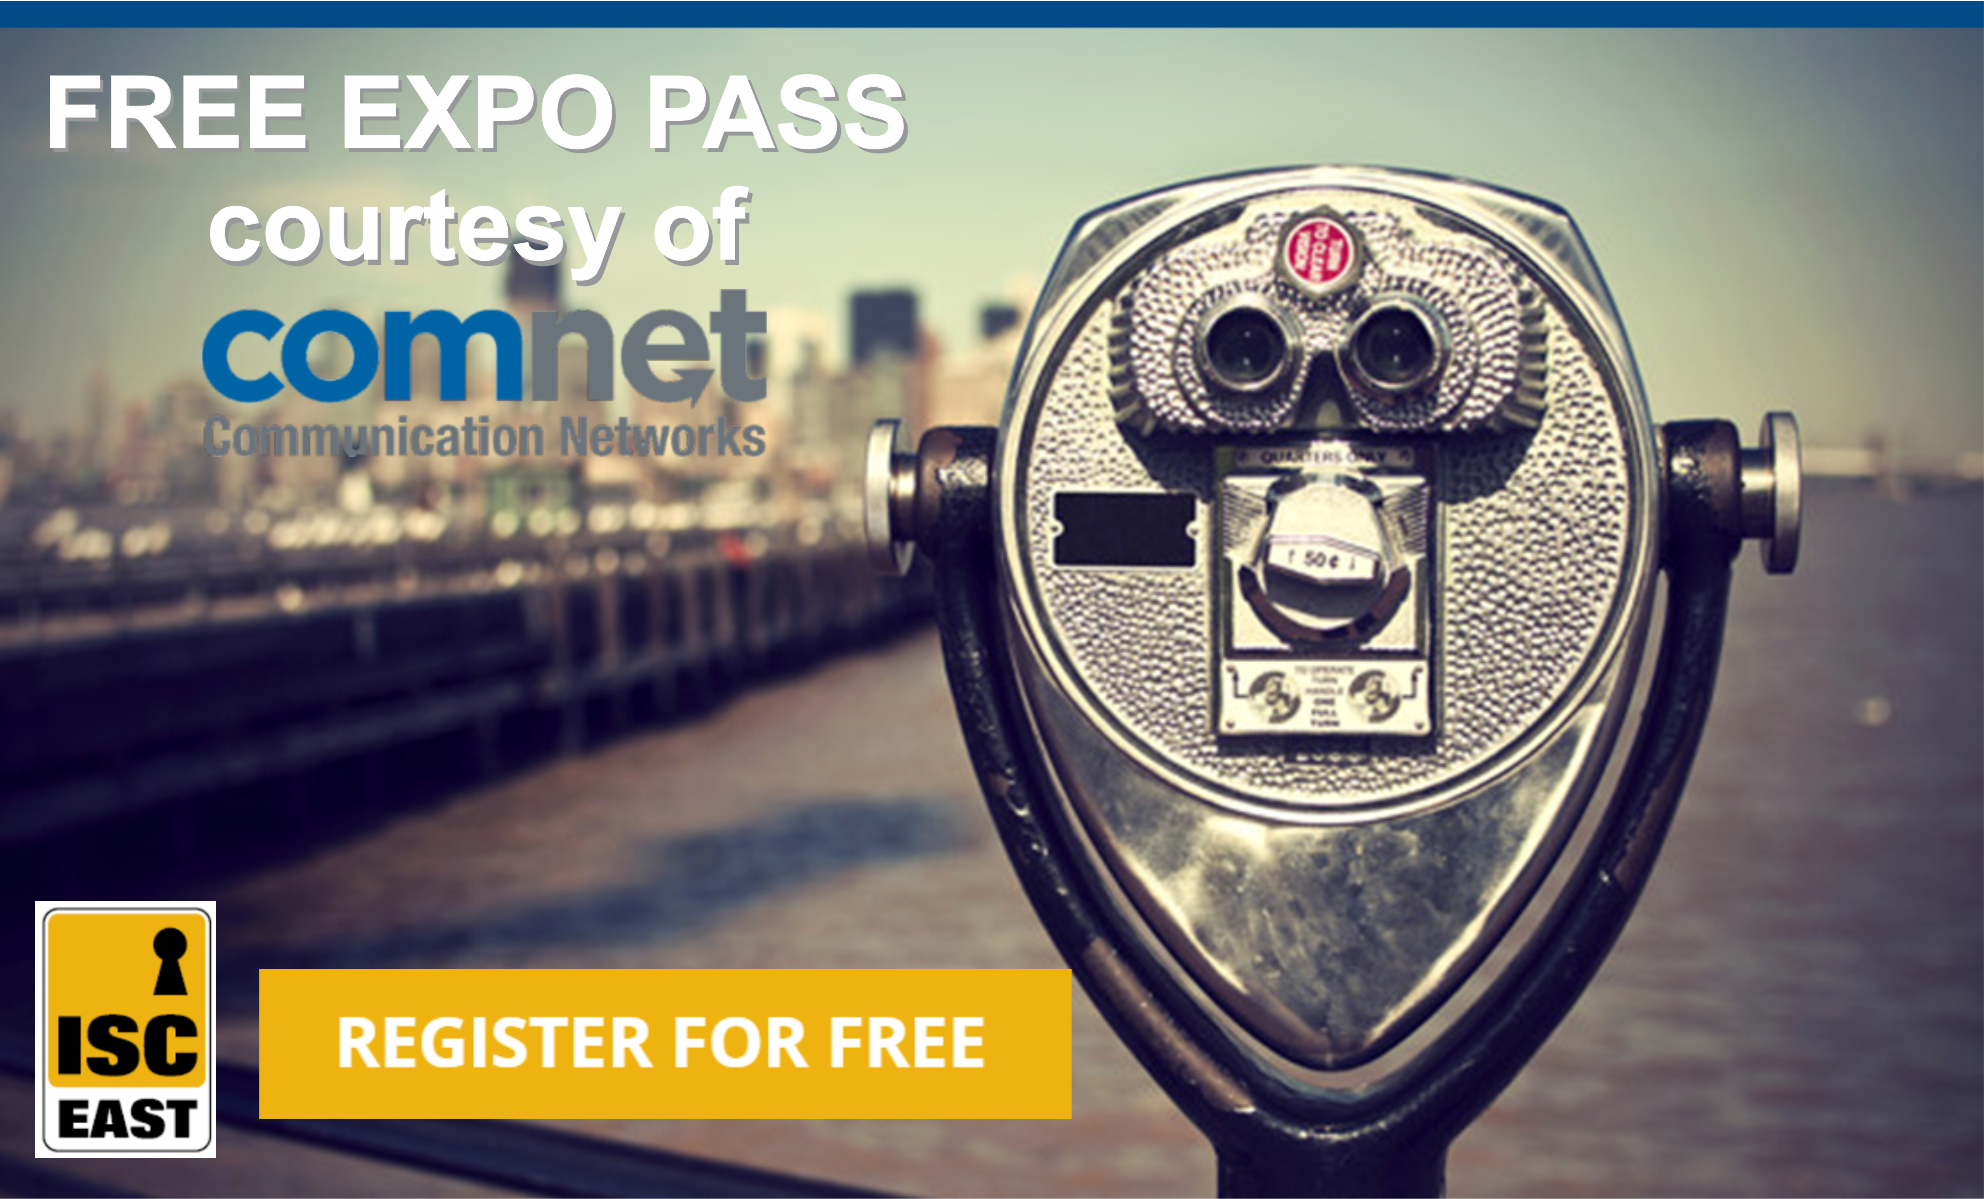 Free ISC East Pass from Comnet image